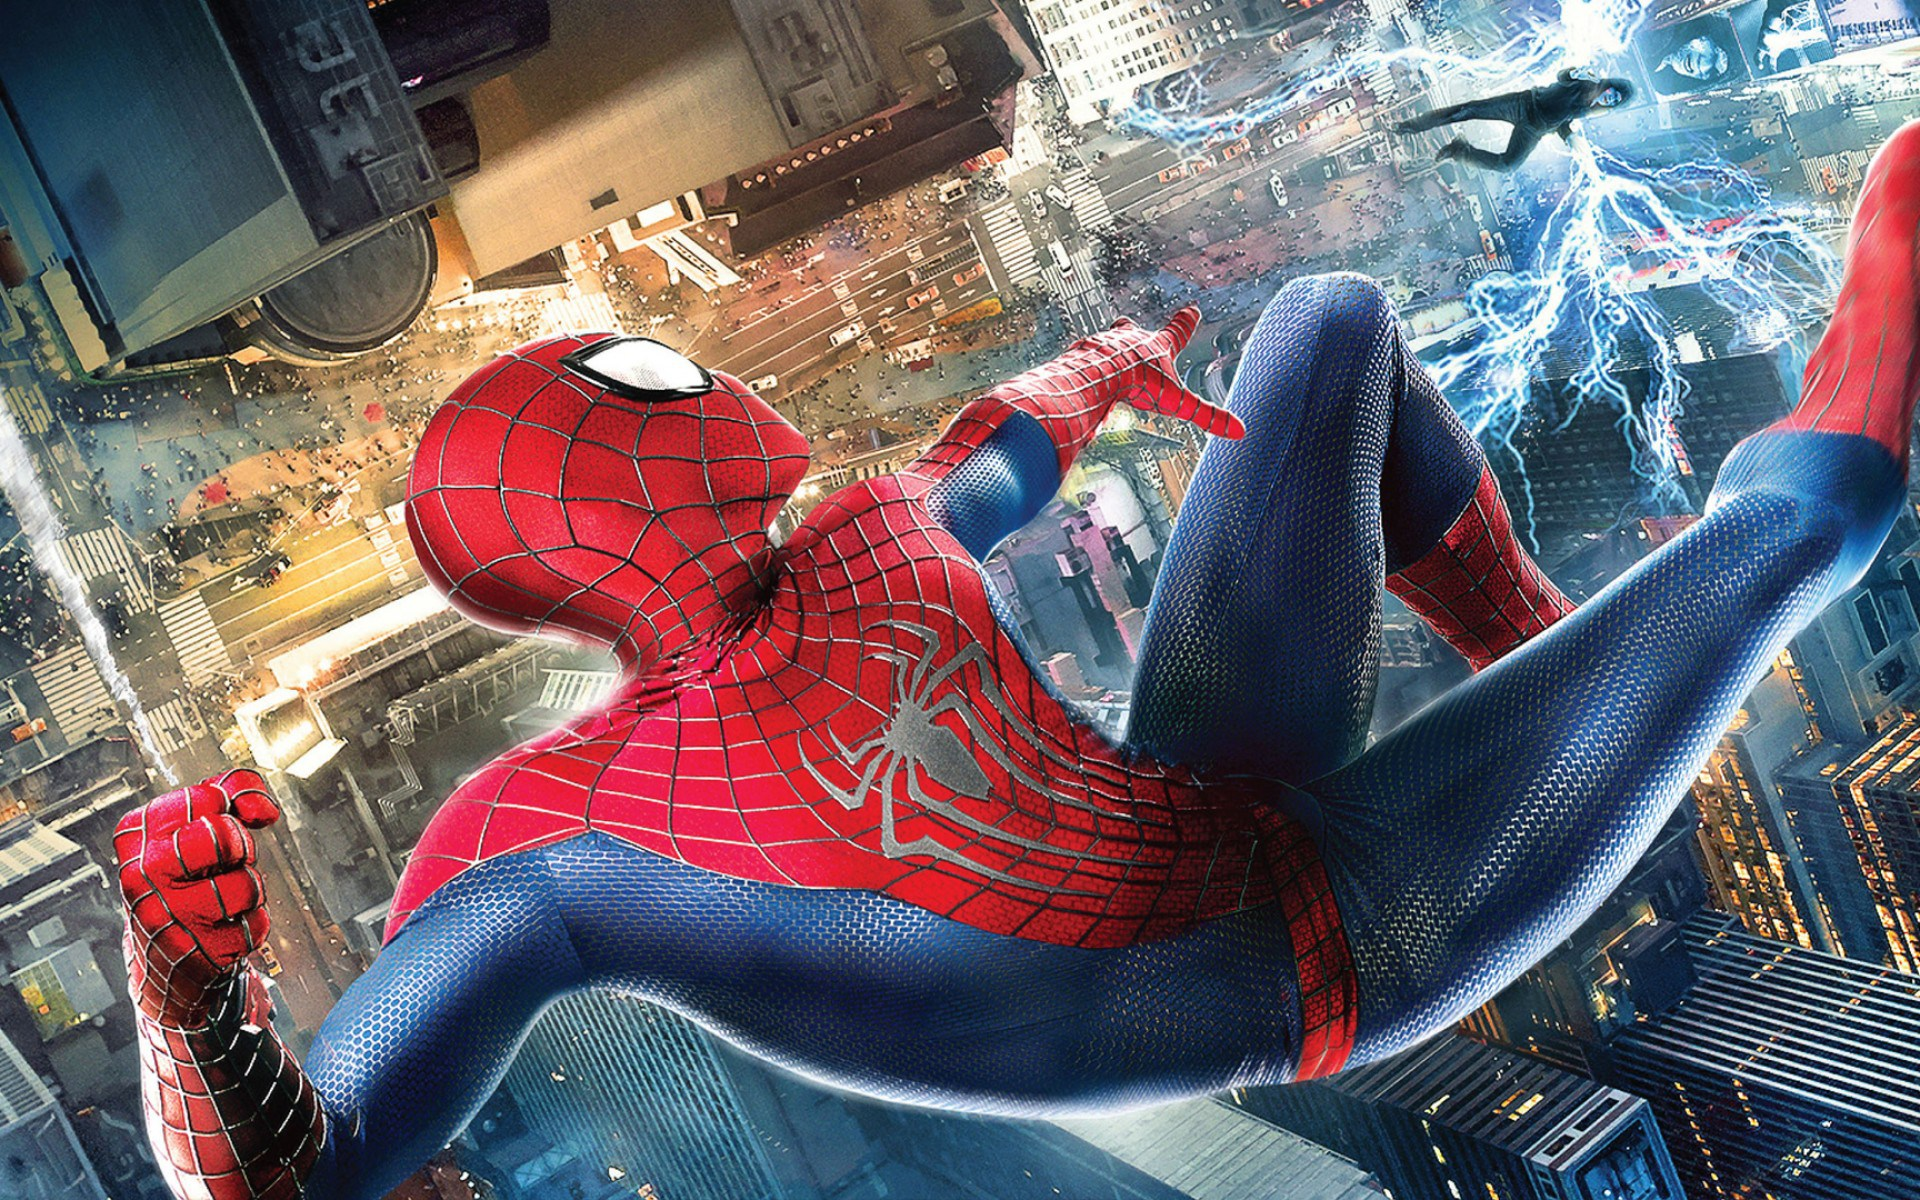 the amazing spider-man 2 review | gamesradar+